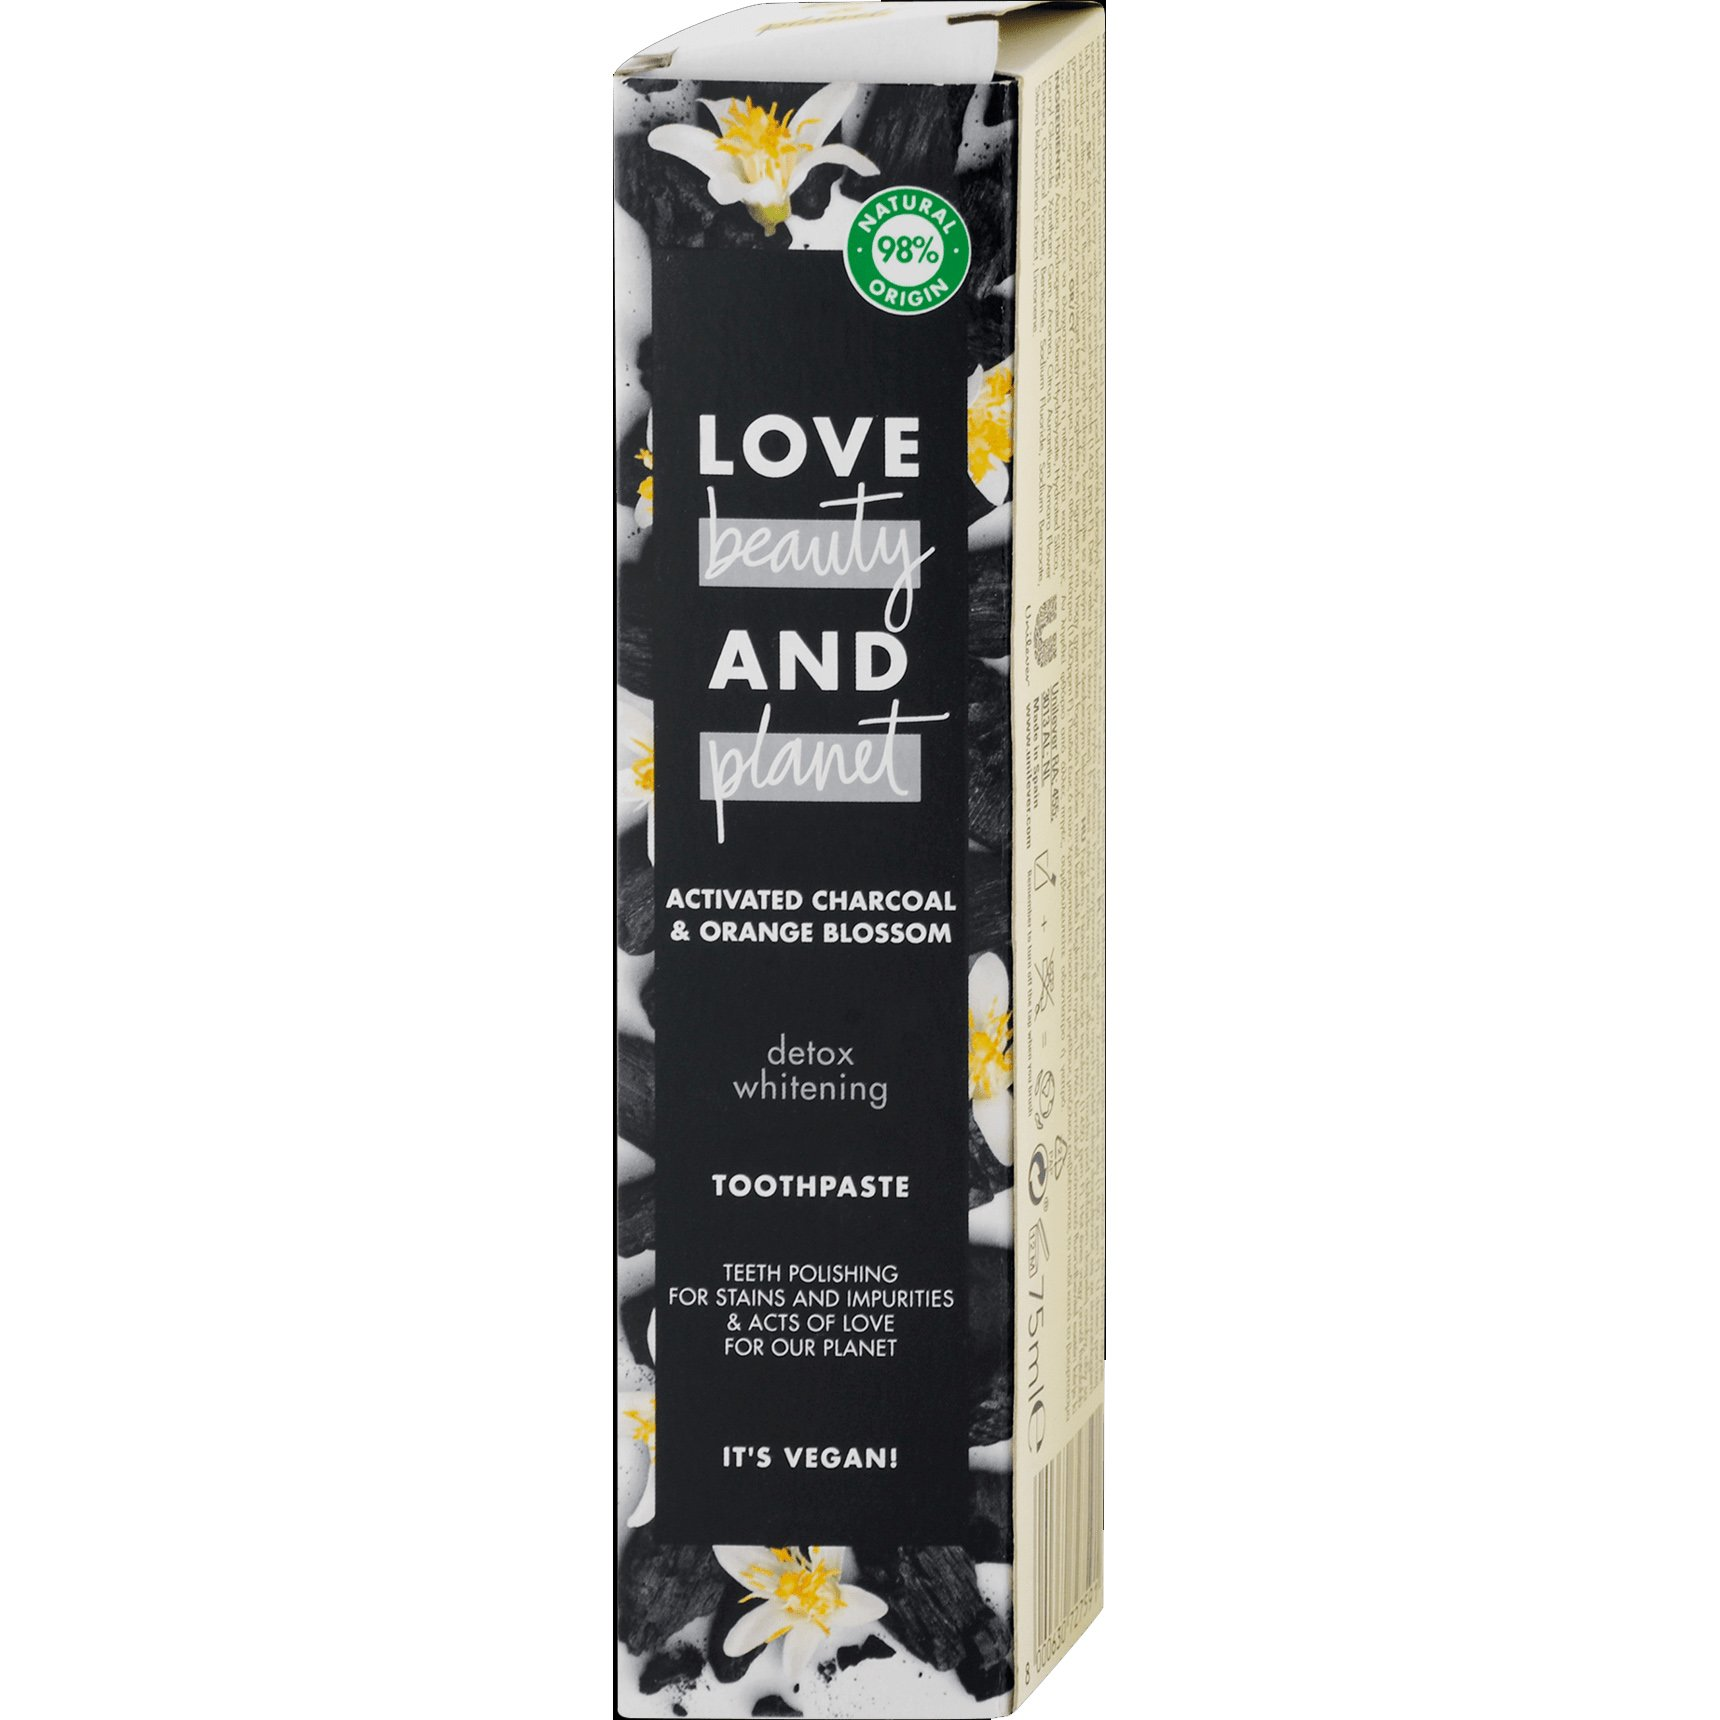 Love Beauty & Planet Activated Charcoal & Orange Blossom Detox Whitening Toothpaste Λευκαντική Οδοντόκρεμα με Ενεργό Άνθρακα 75m